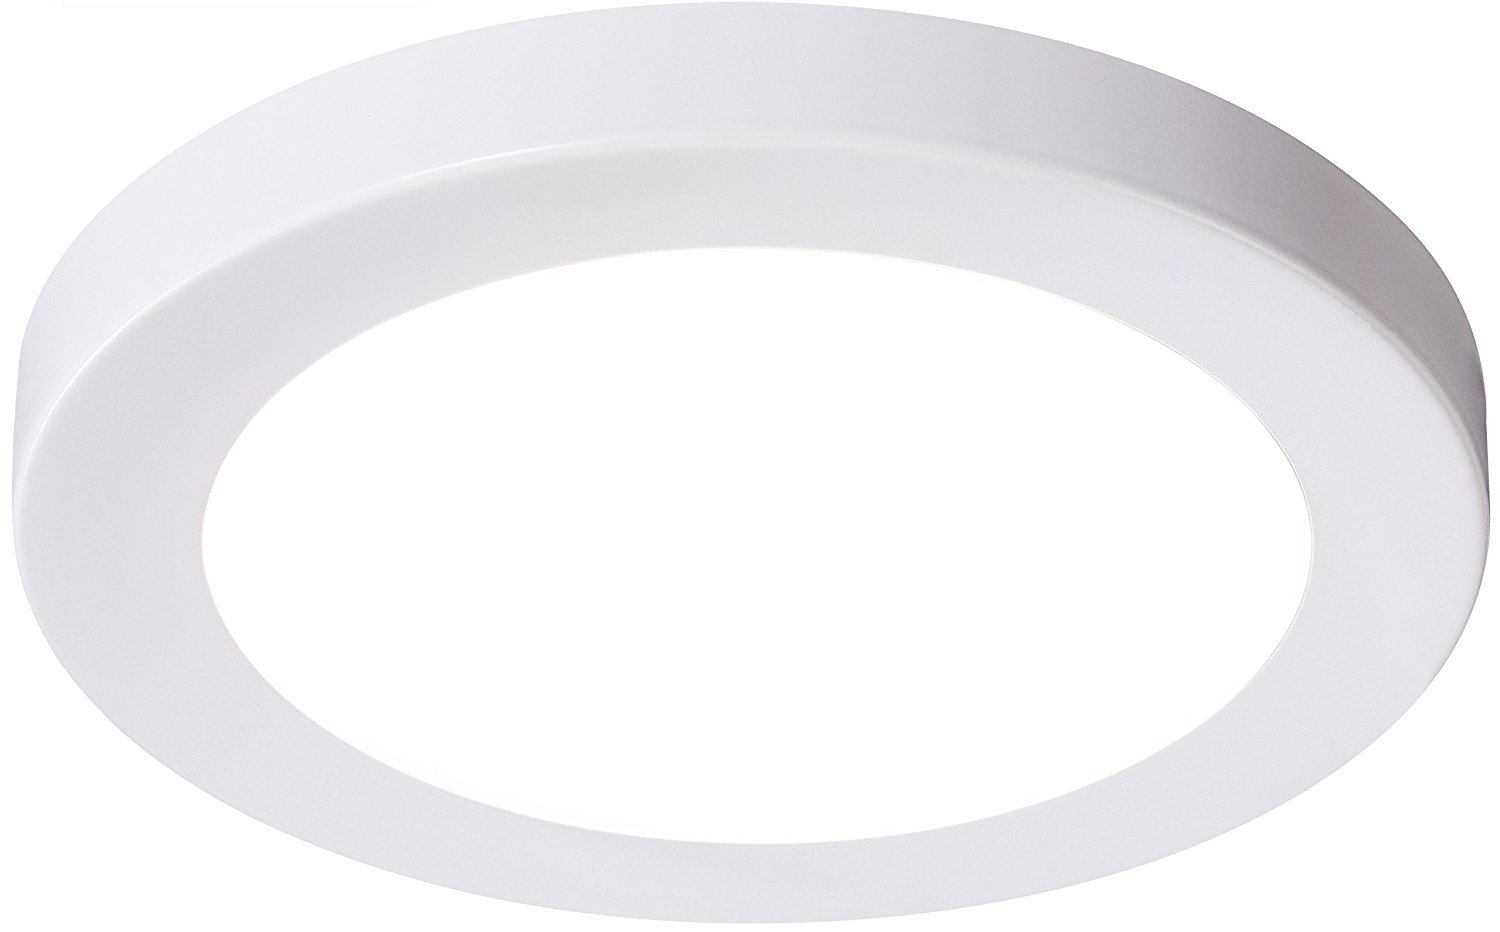 Cloudy Bay LMFFM712840WH 7.5 inch LED Ceiling Light,12W 840lm,4000K Cool White, LED Flush Mount,White Finish, Wet Location